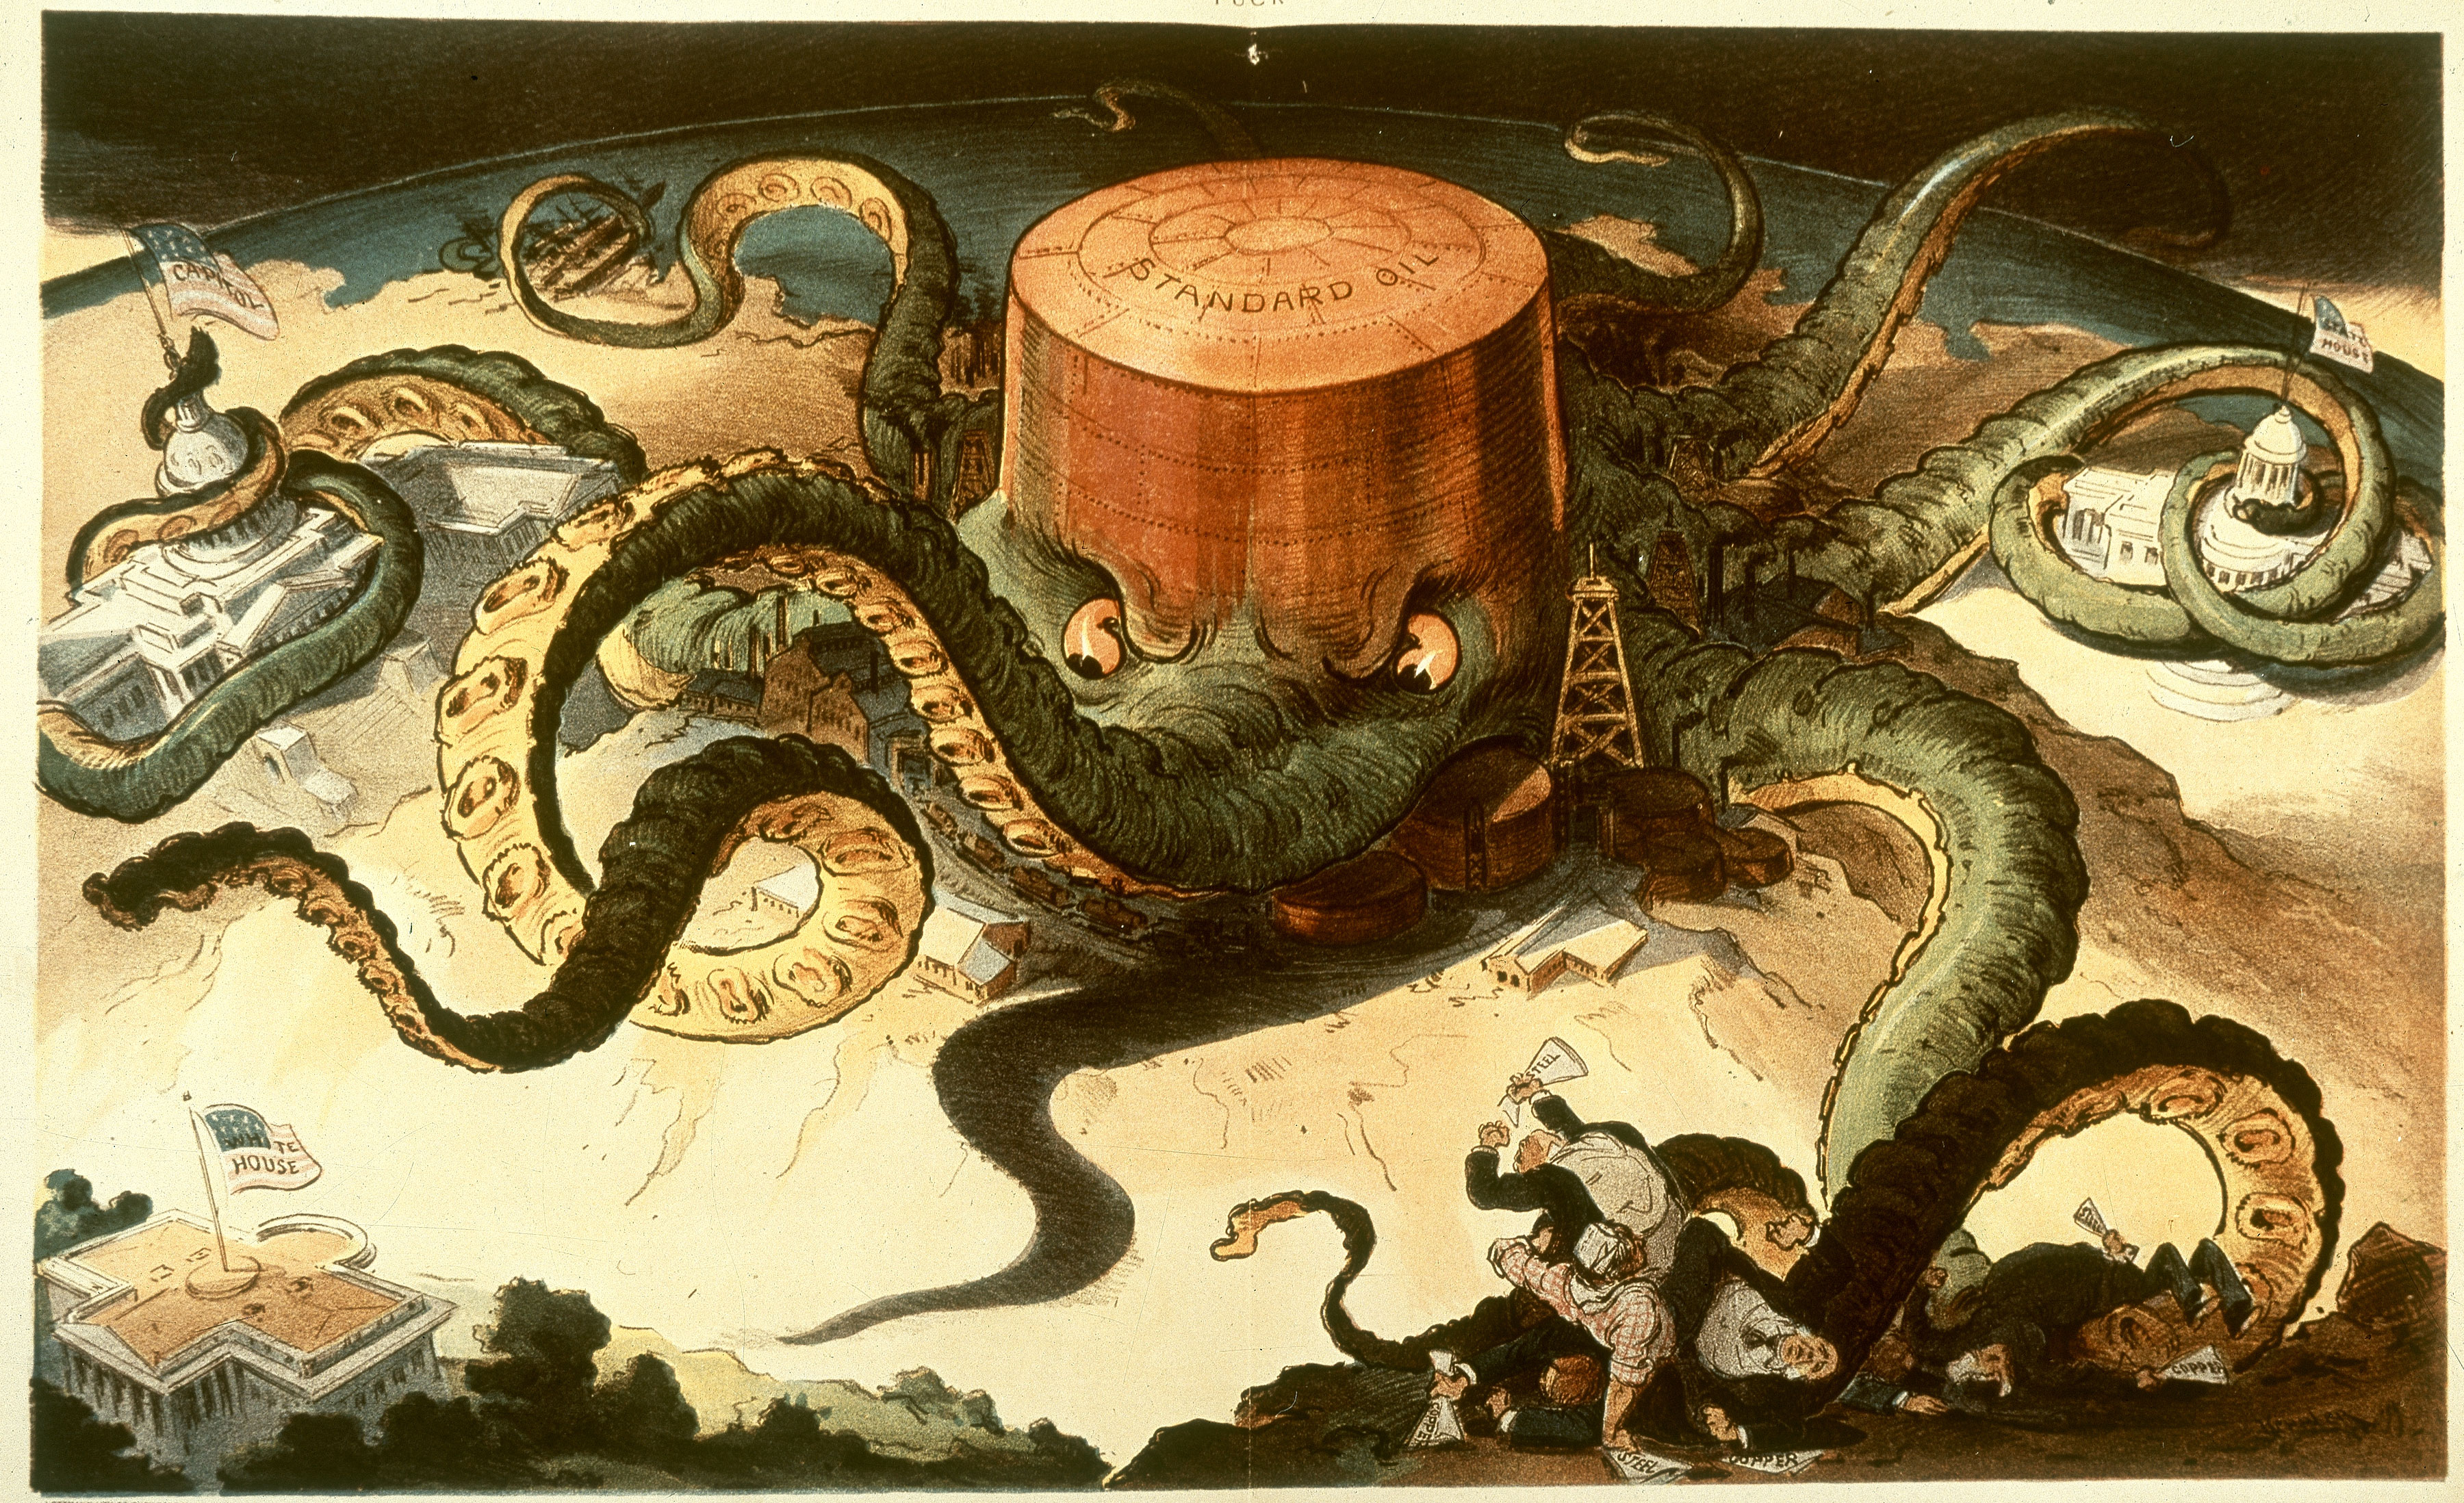 https://upload.wikimedia.org/wikipedia/commons/a/a0/Standard_oil_octopus_loc_color.jpg